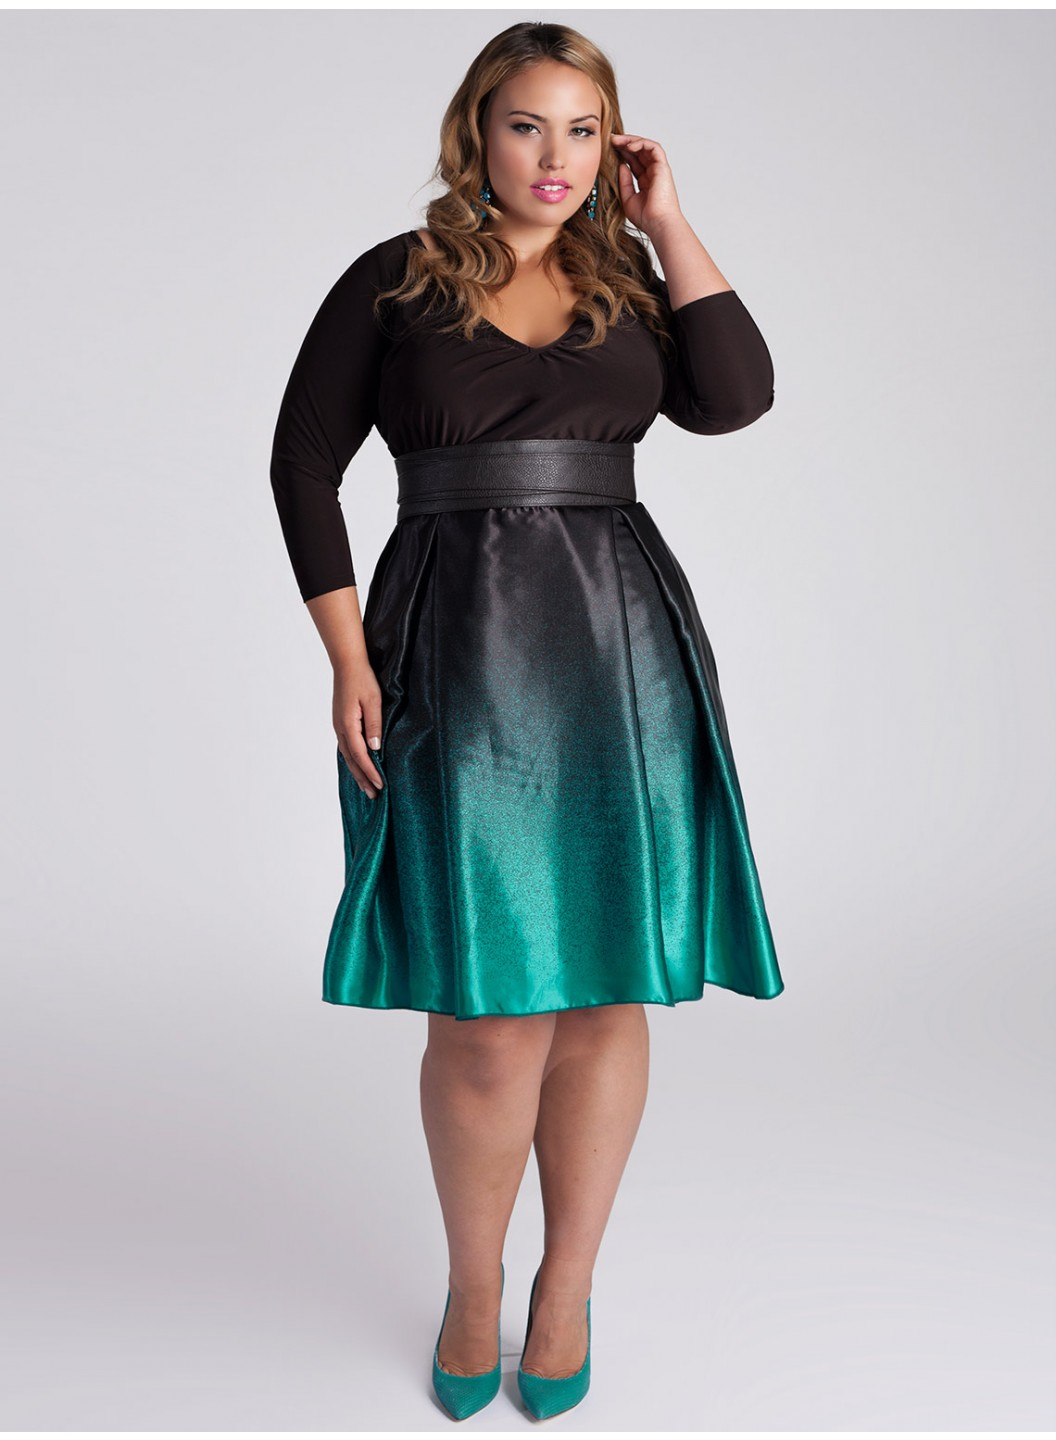 Plus-Size-Wedding-Guest-Dresses